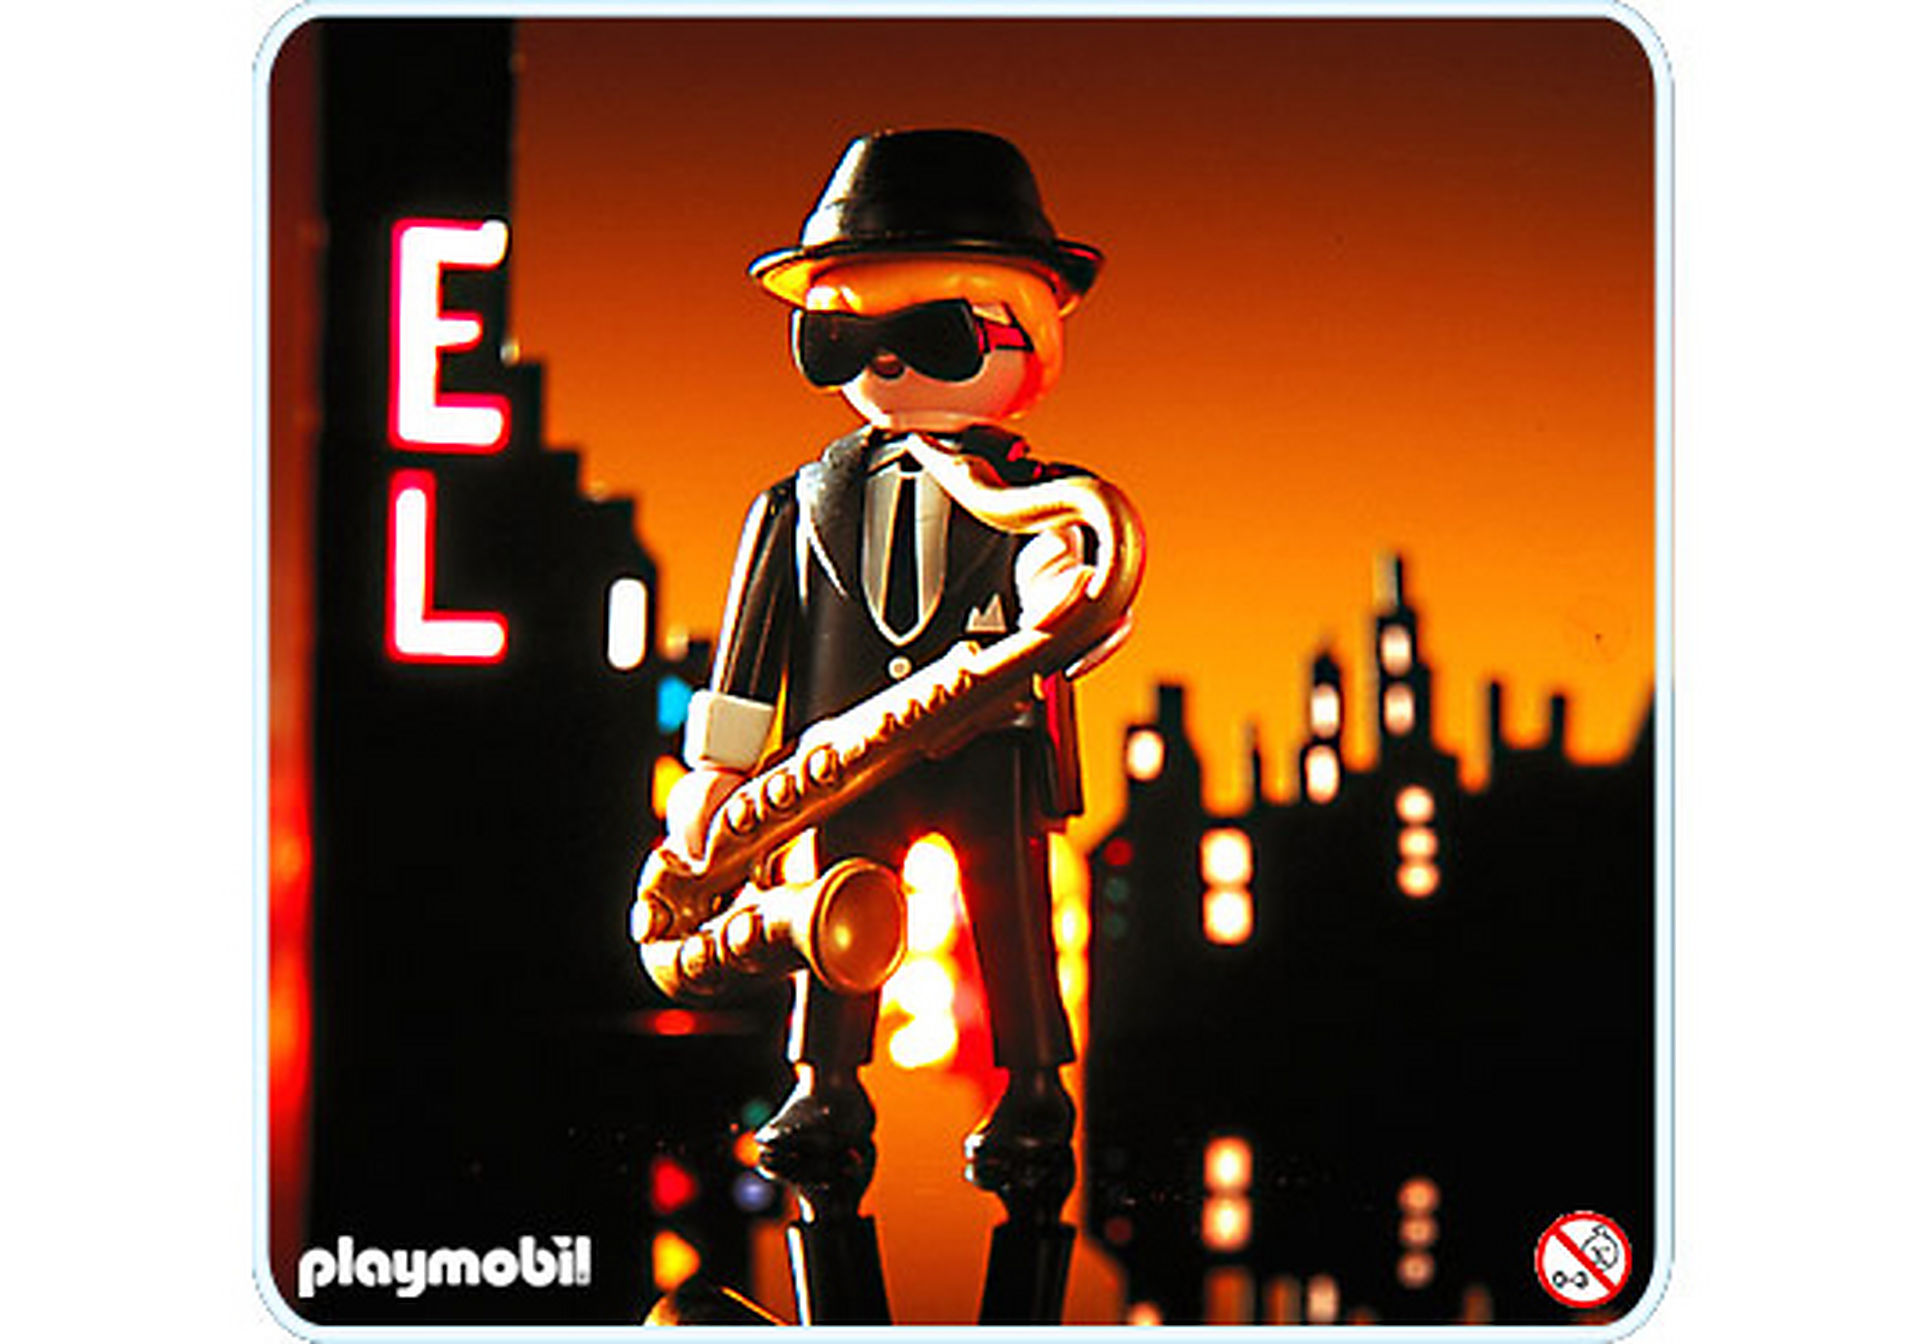 http://media.playmobil.com/i/playmobil/4508-A_product_detail/Saxophoniste